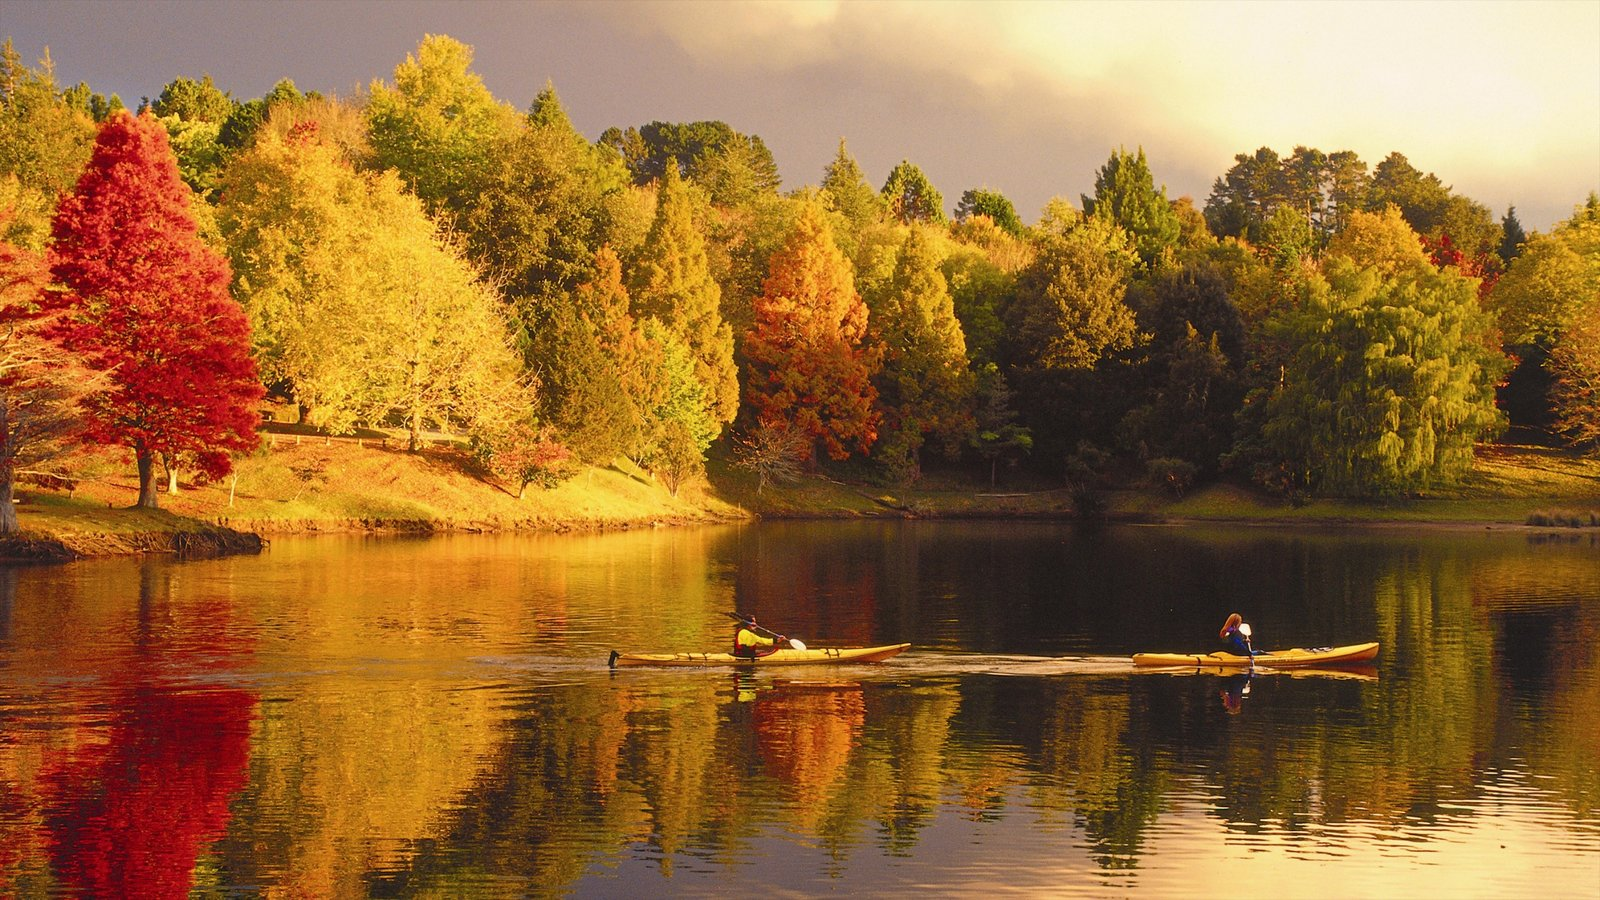 Tauranga showing fall colors, forest scenes and landscape views